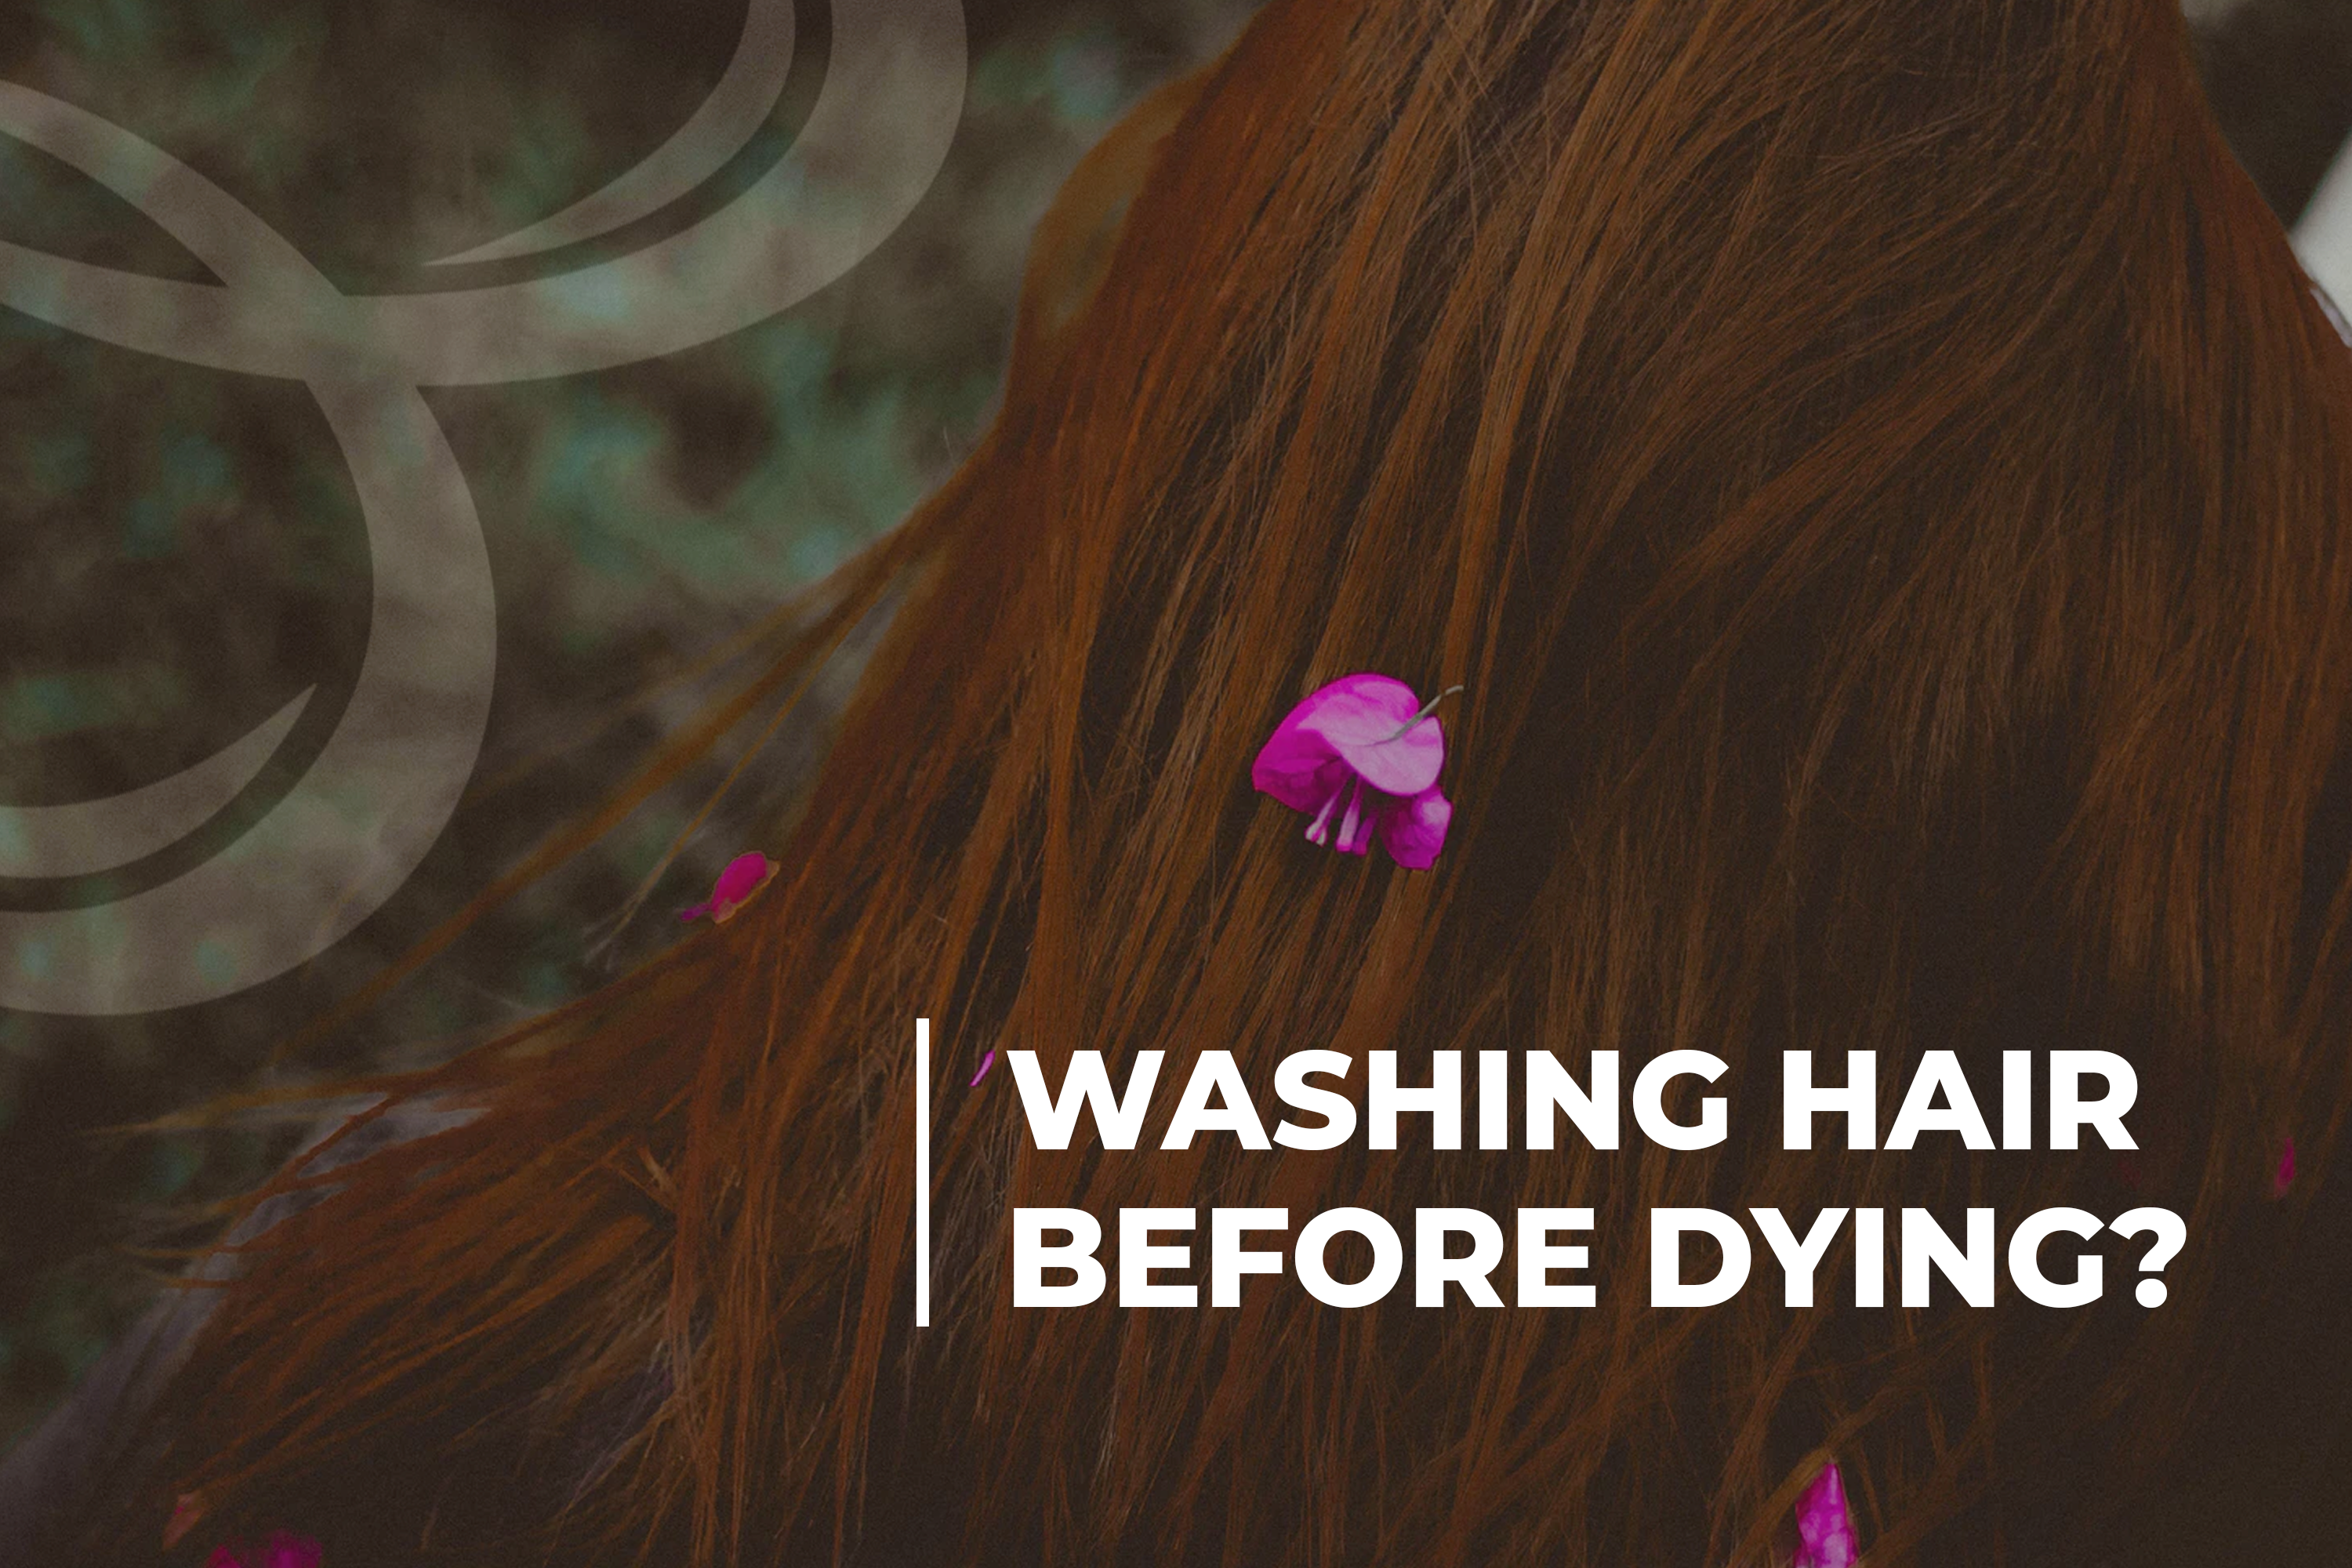 Washing Hair Before Dying